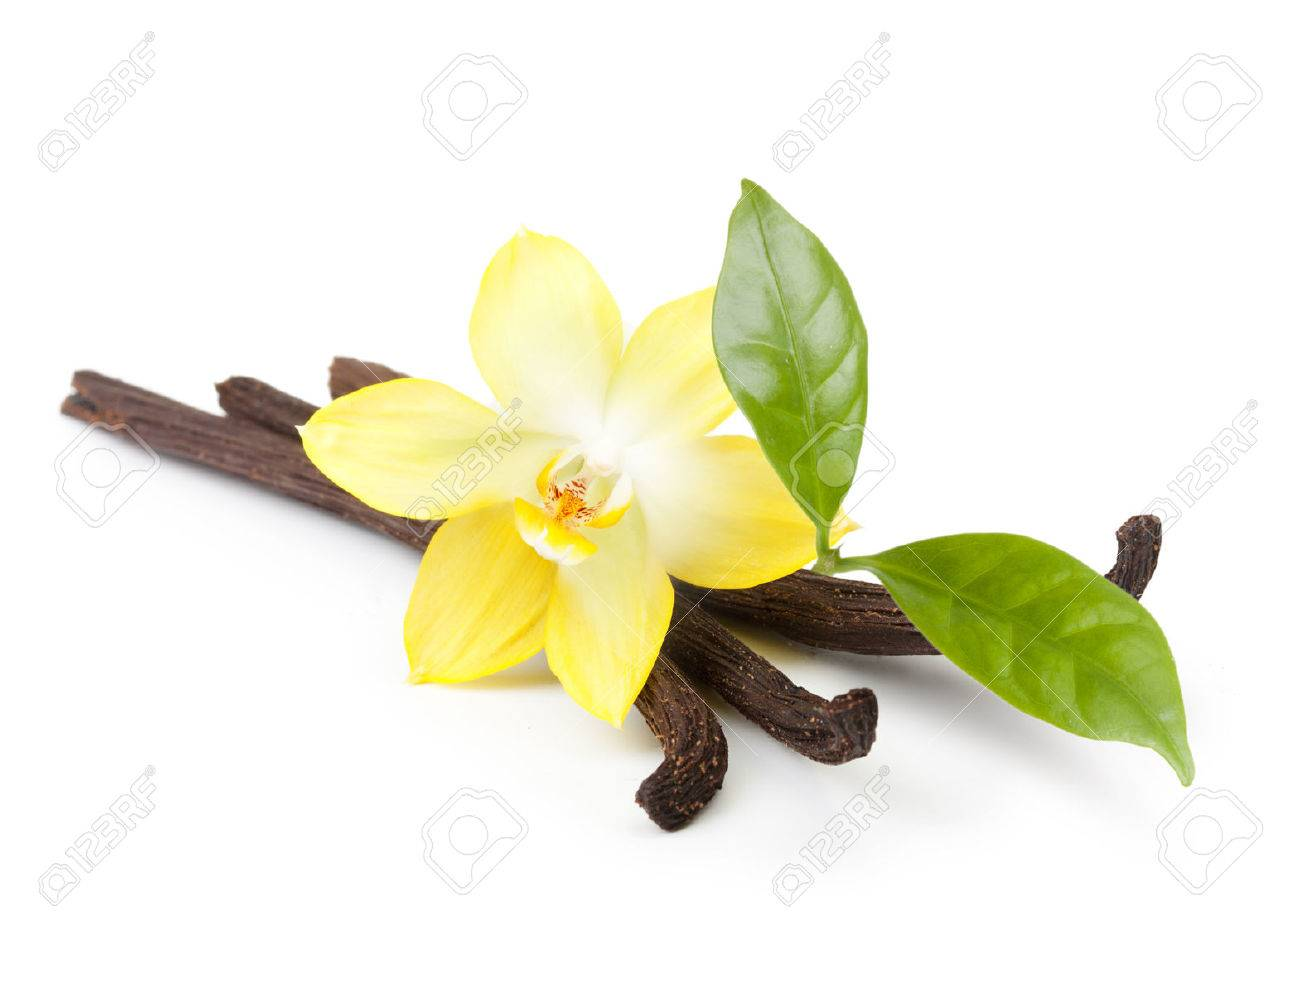 Vanilla pods and orchid flower isolated on white background - 27040289